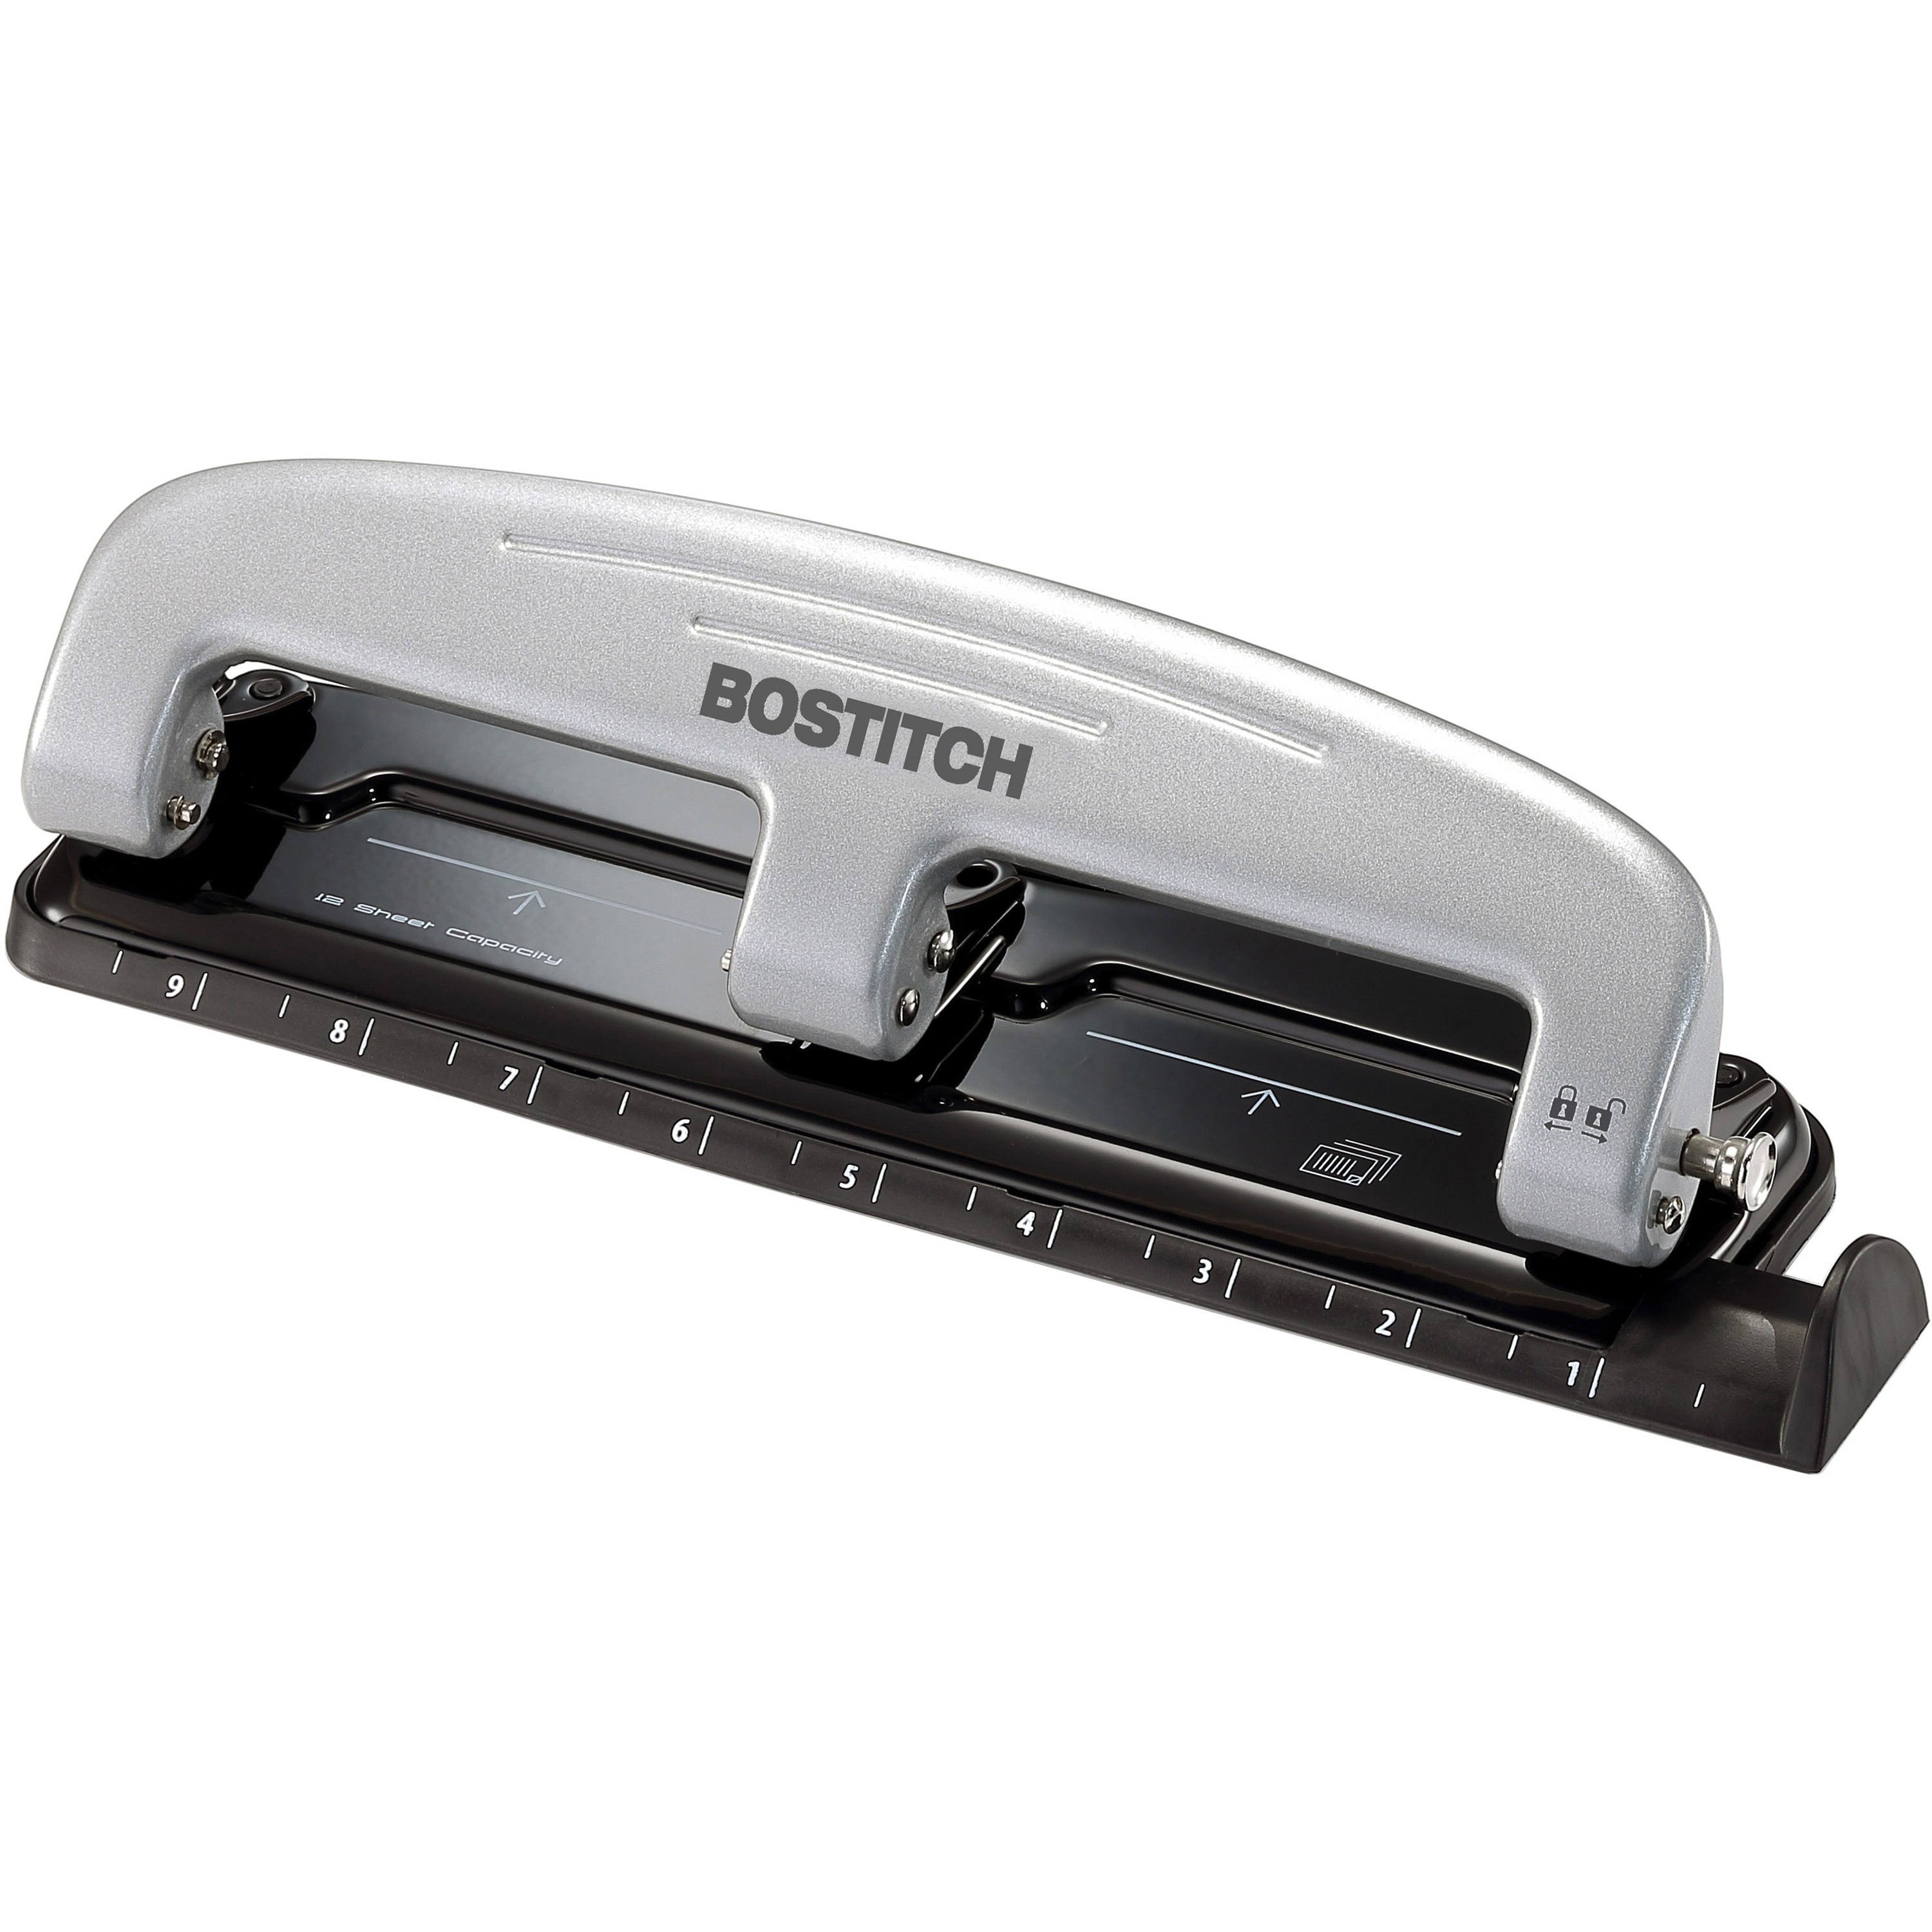 12-Sheet inPRESS 12 Three-Hole Punch, Black/Silver